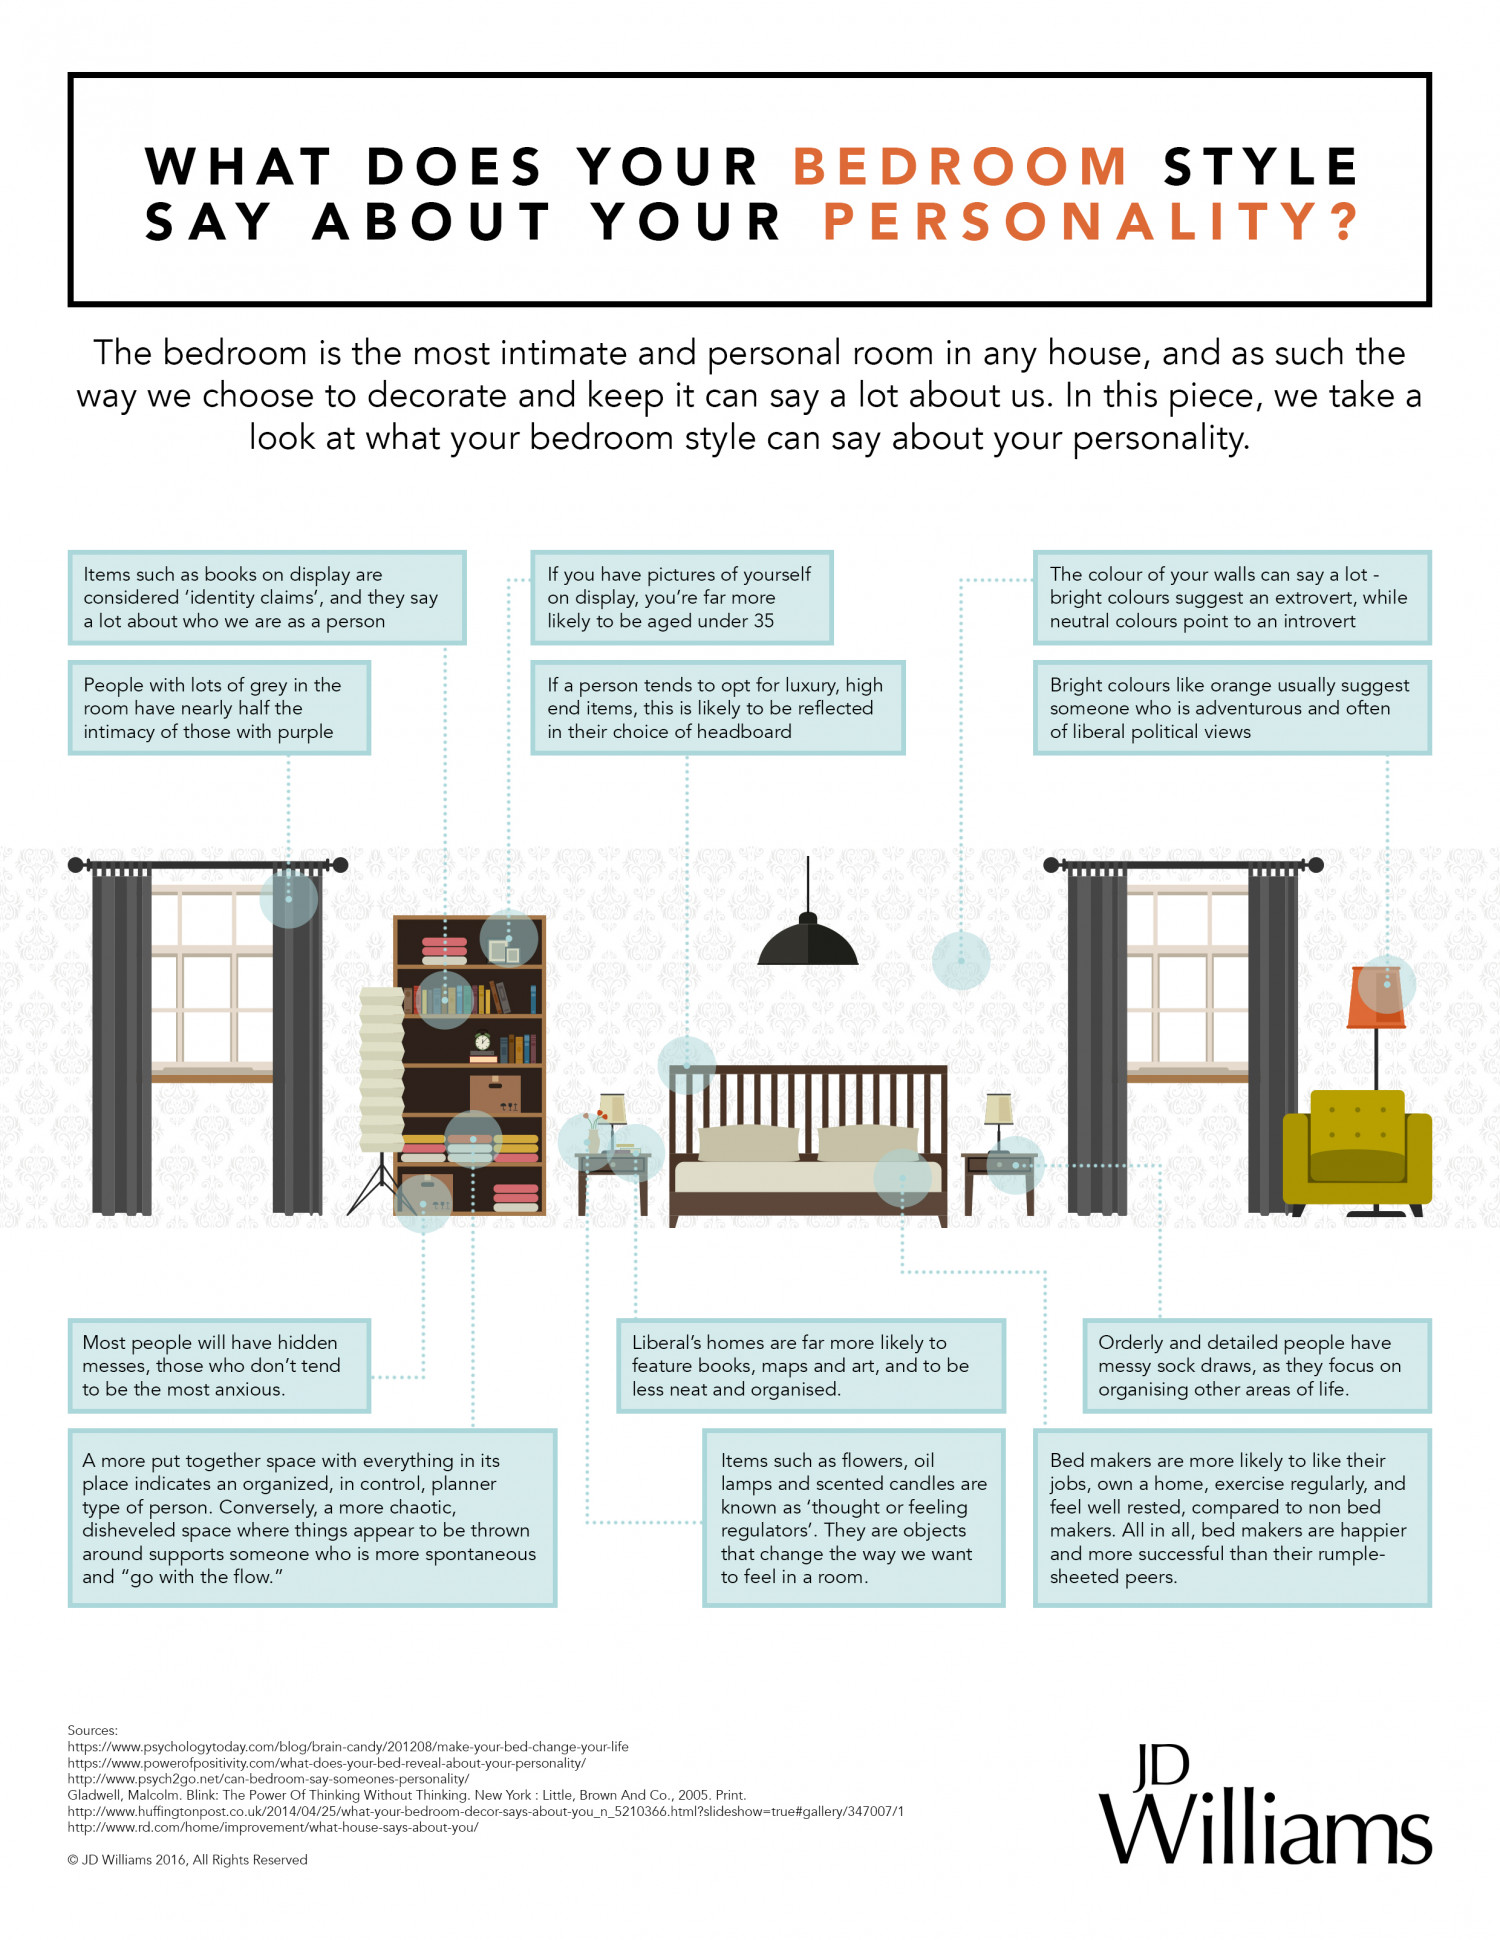 What Does Your Bedroom Style Say About Your Personality? Infographic